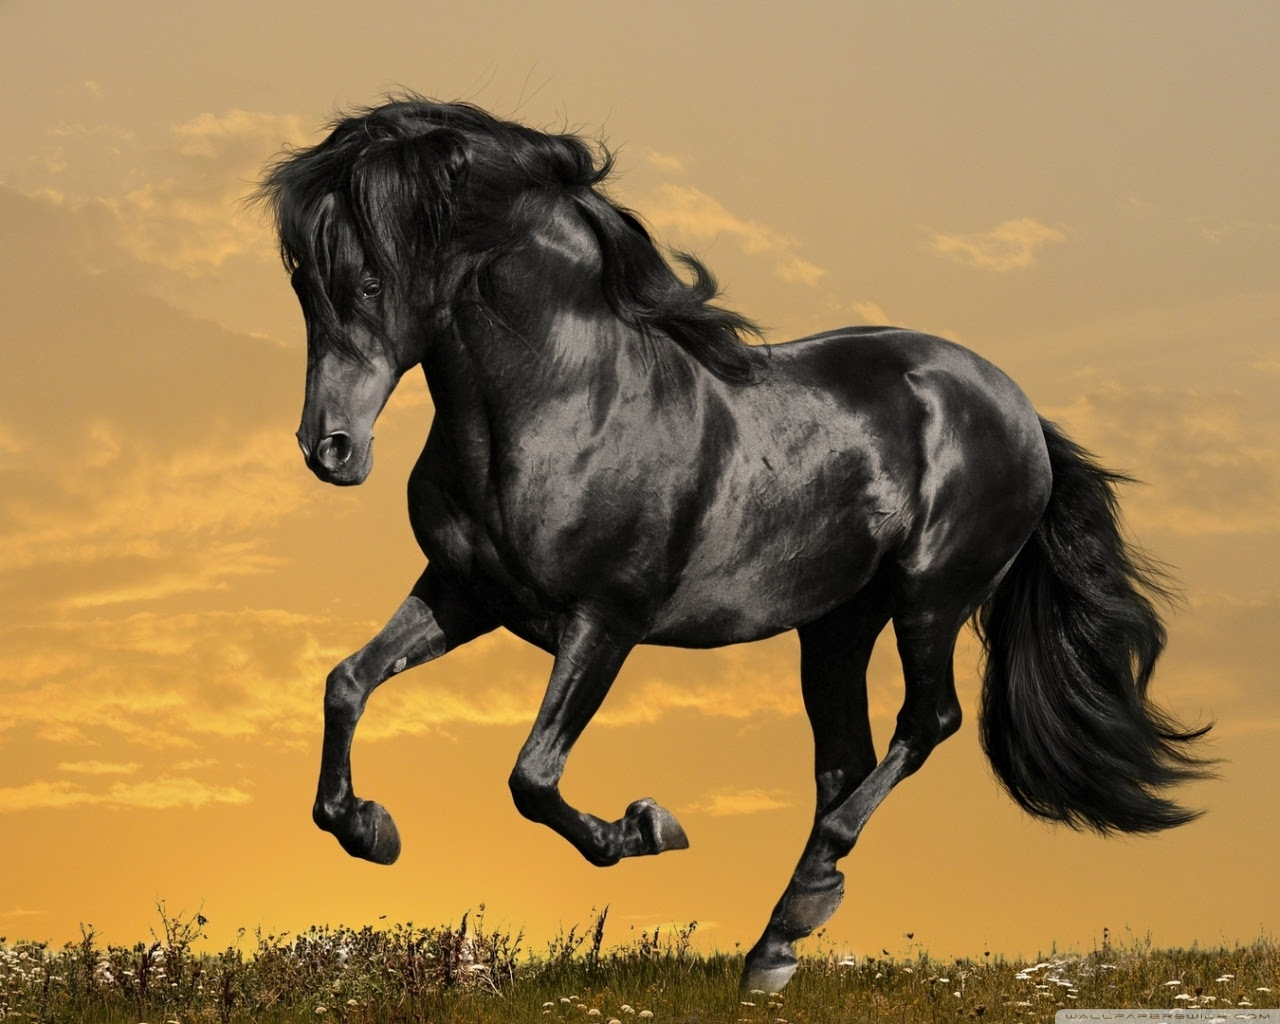 Animal Black Horse Background Image Hd Desktop Wallpapers Wide Images, Photos, Reviews